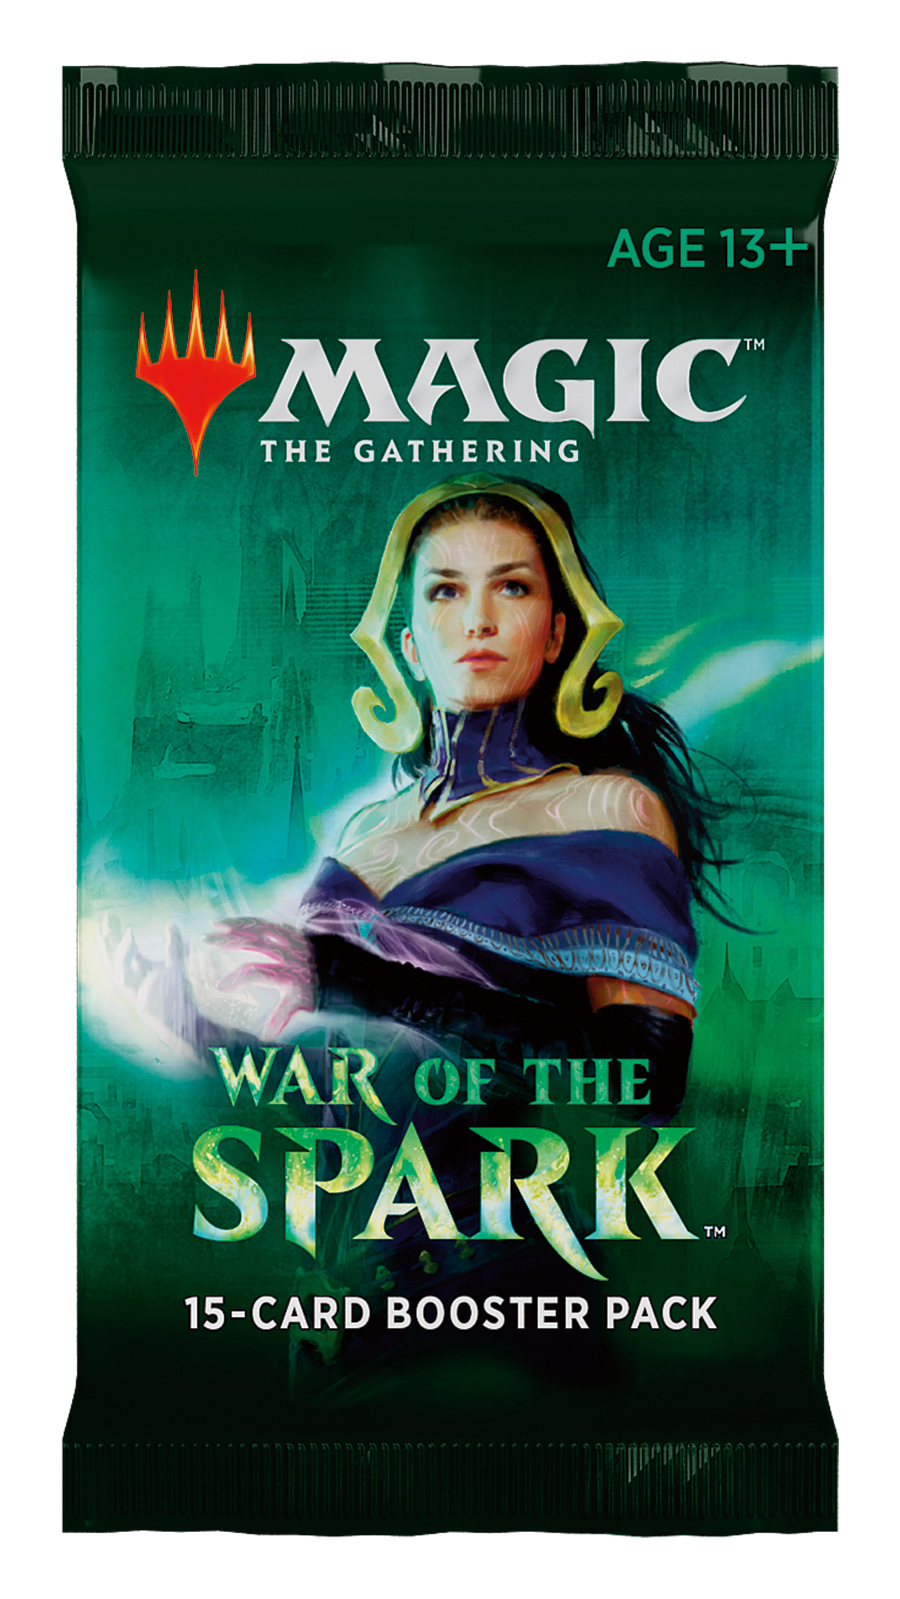 Magic The Gathering: War of the Spark Single Booster image